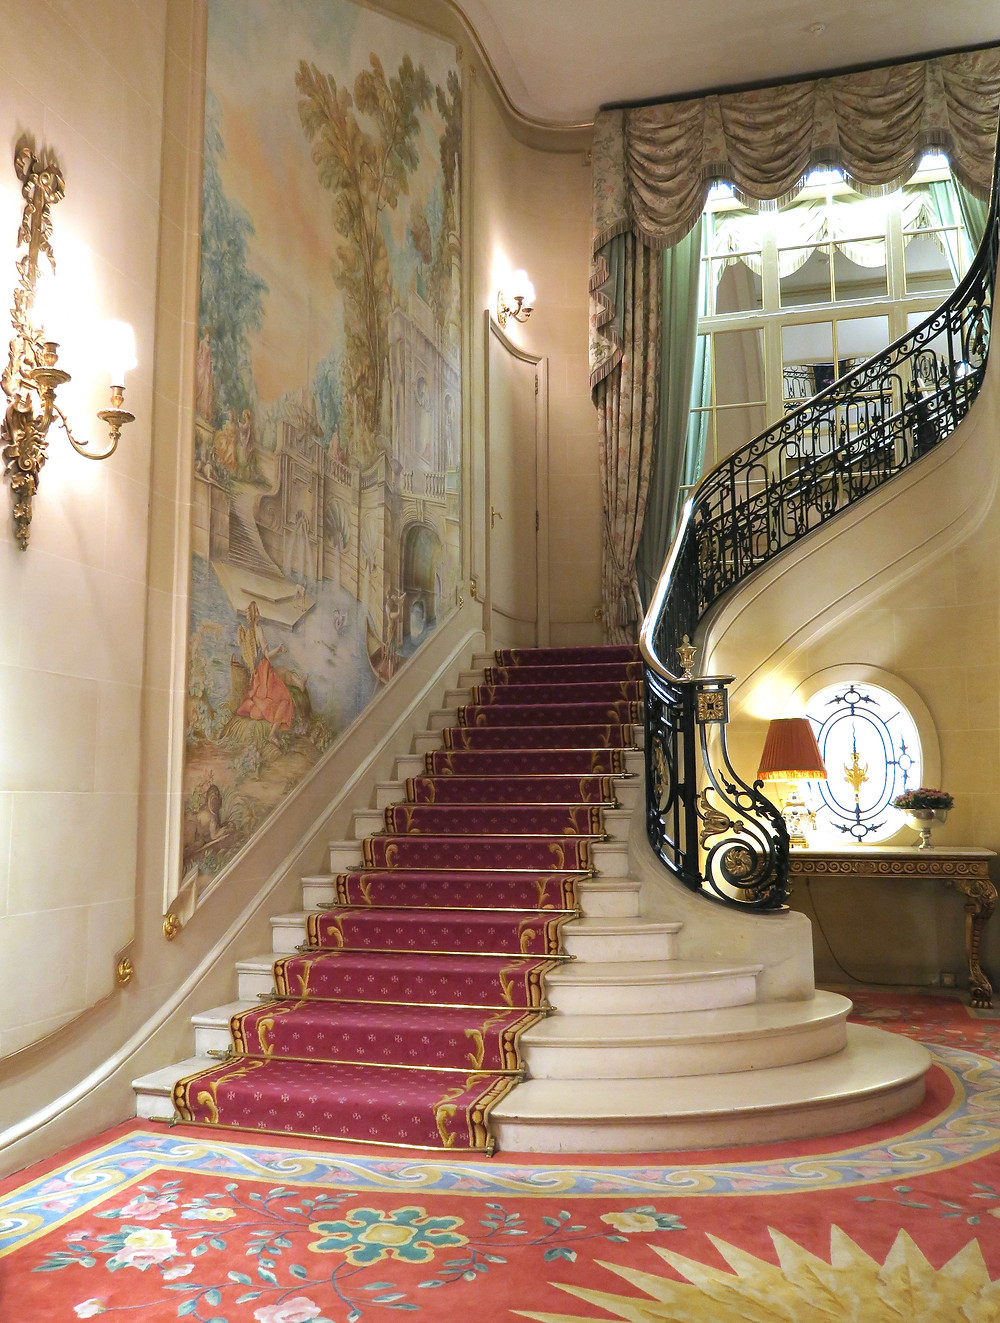 Staircase in the lobby of The Ritz London